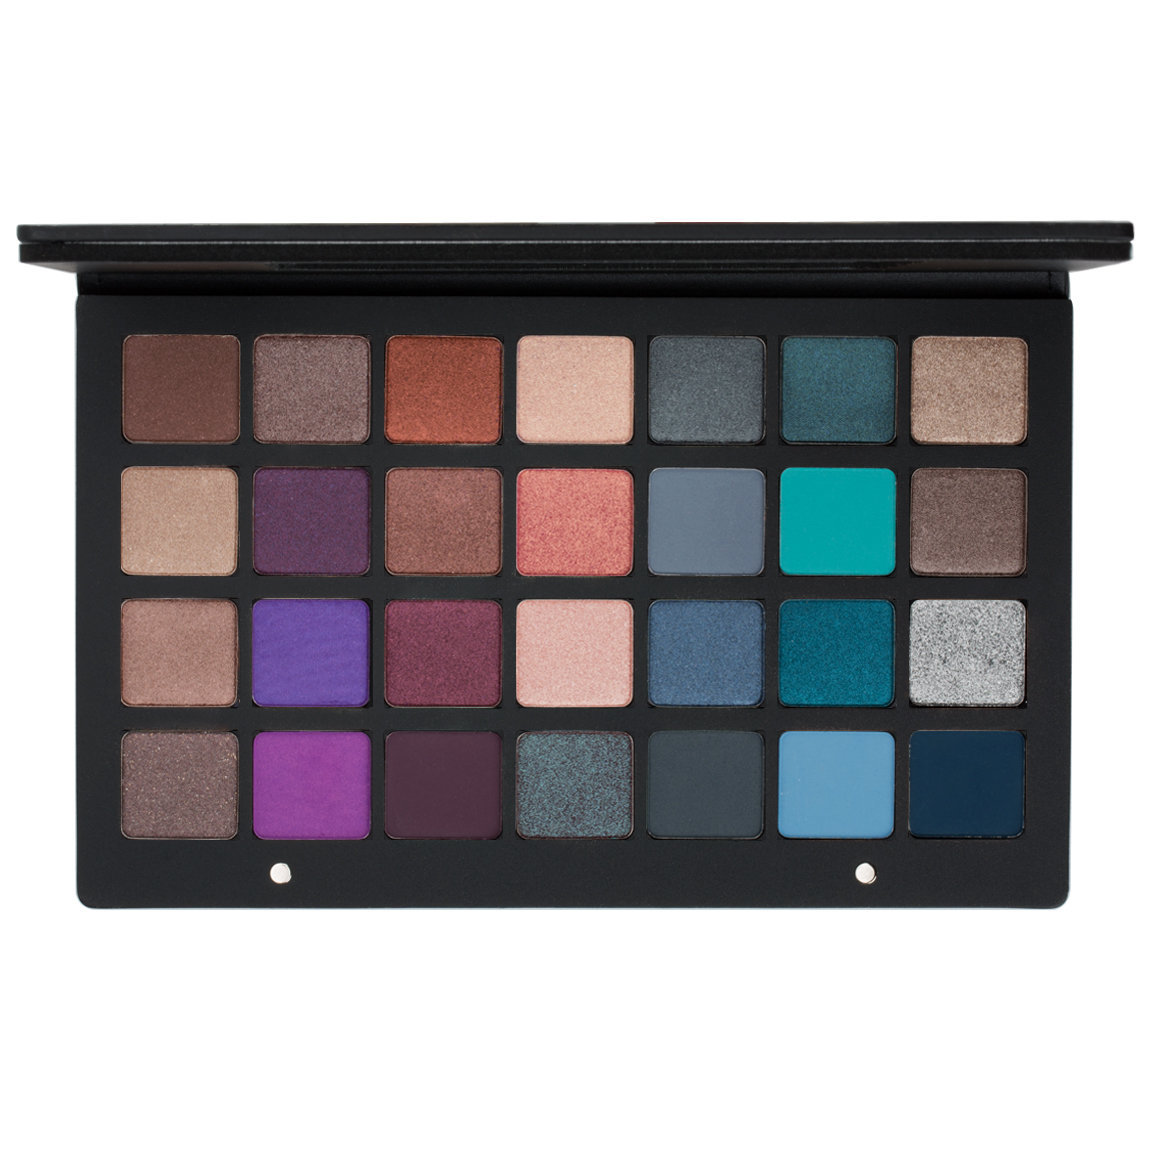 Natasha Denona Eyeshadow Palette 28 Purple Blue product smear.